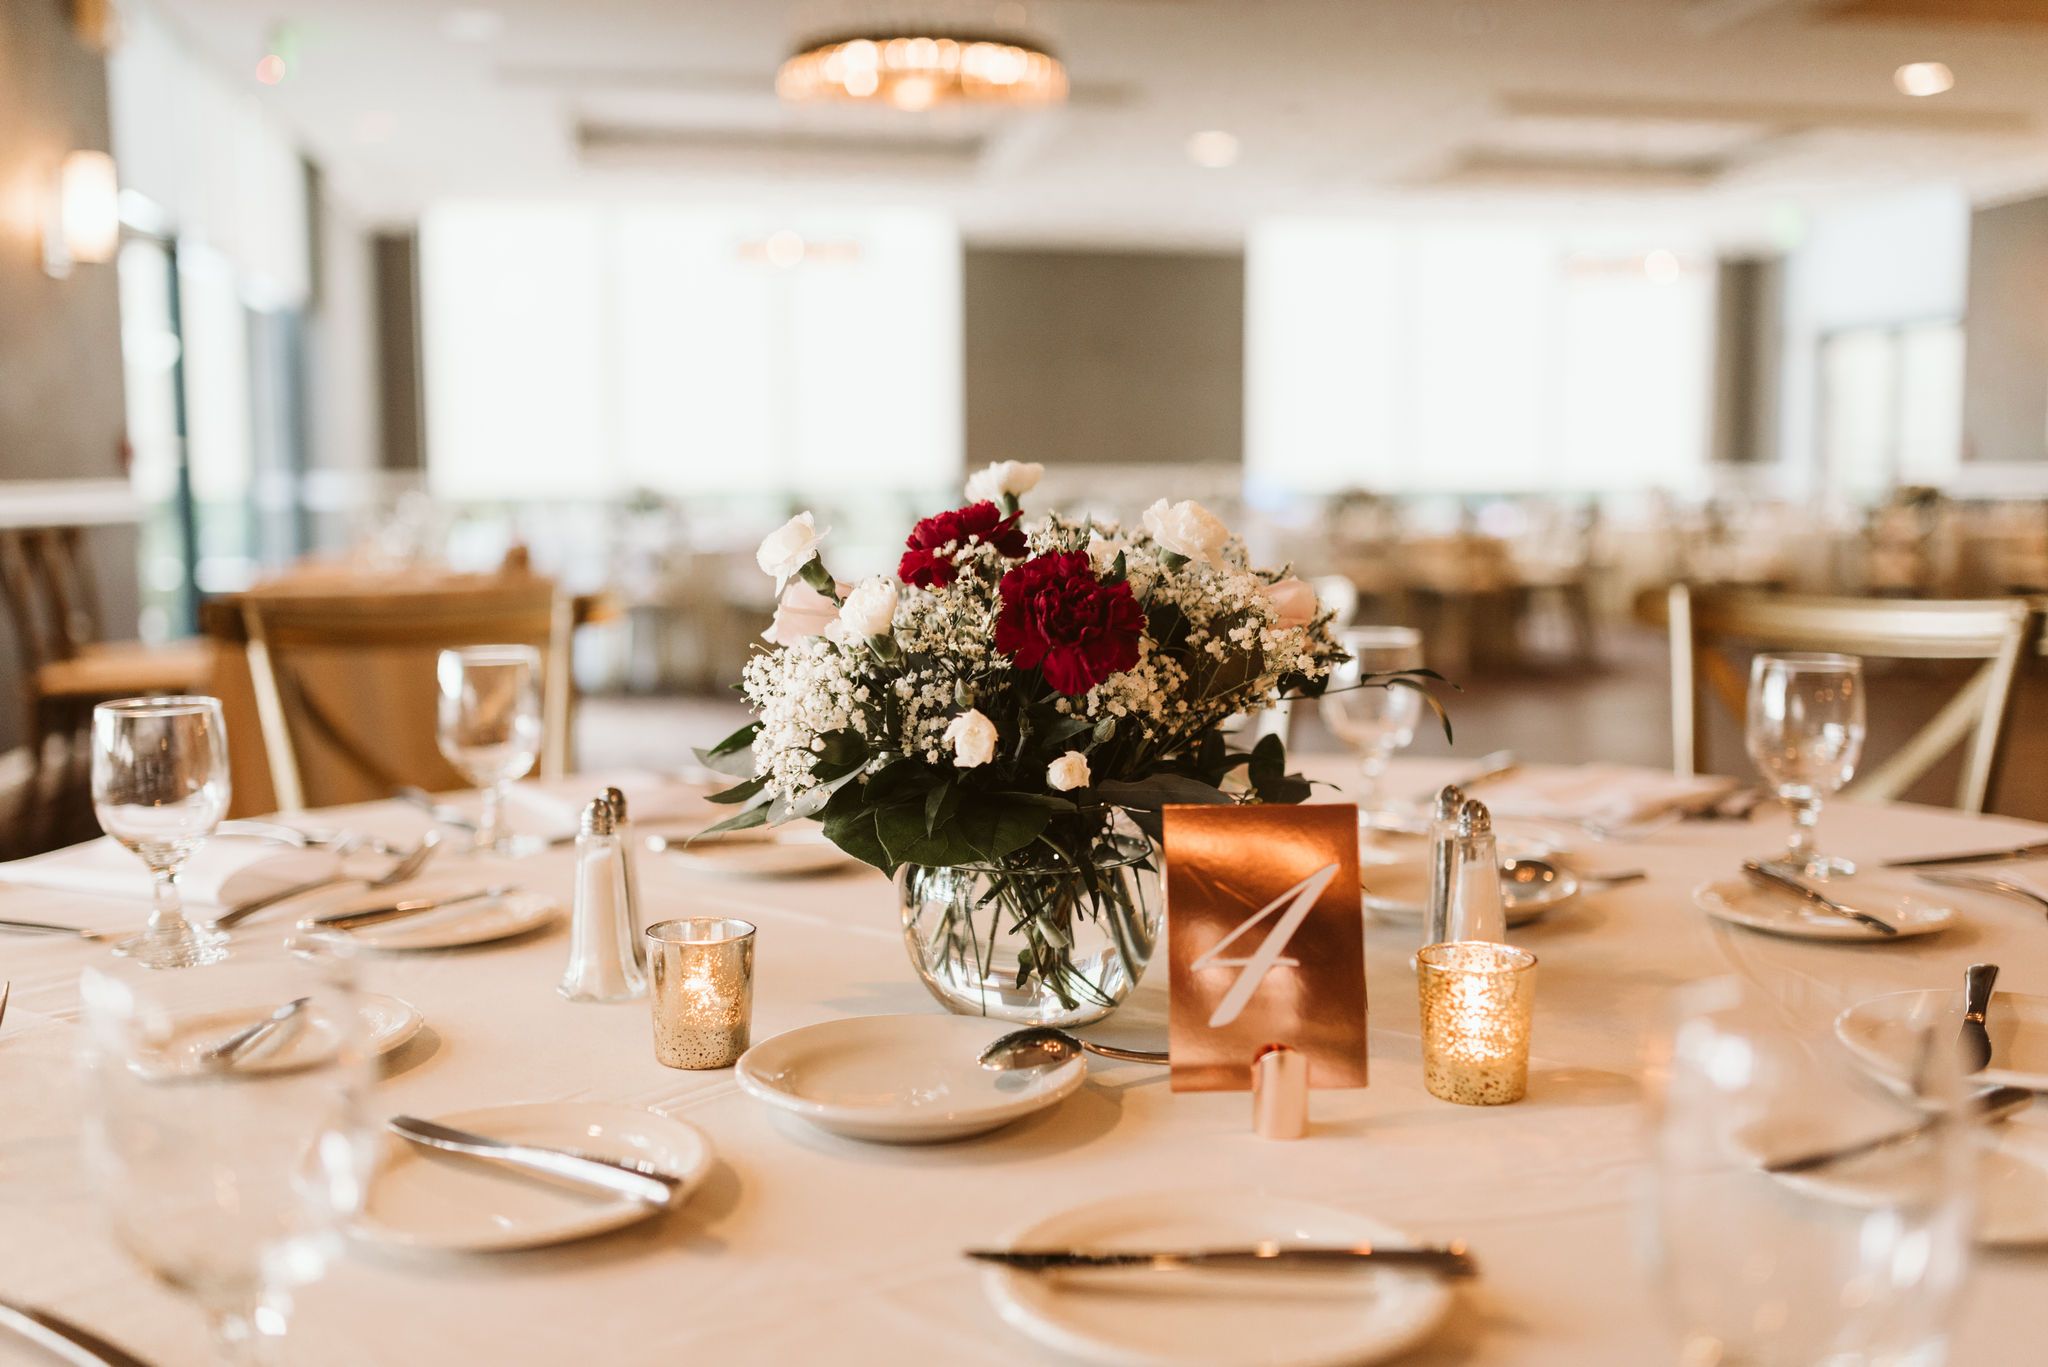 Phoenix Maryland, Baltimore Wedding Photographer, Eagle's Nest Country Club, Classic, Romantic, Reception Table Setting, Metallic Table Number, Dundalk Florist